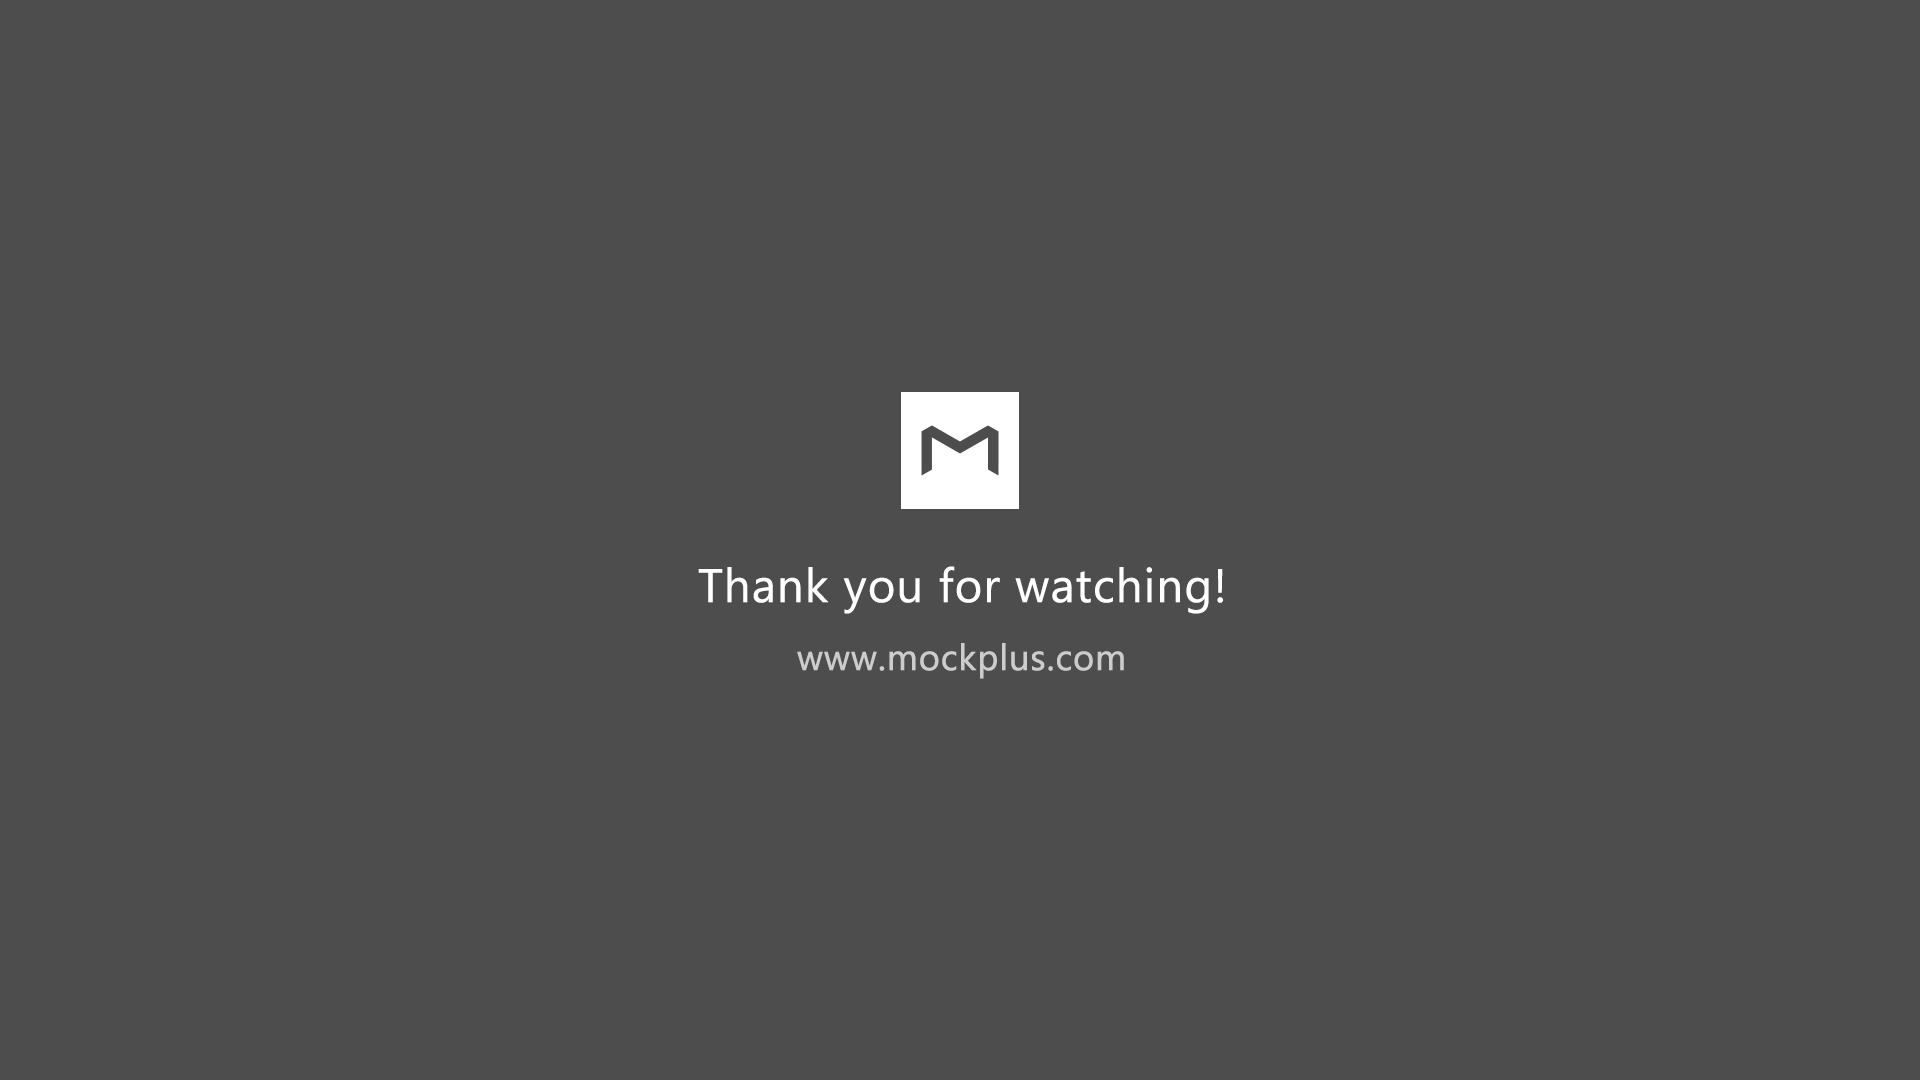 Mockplus Rapid Prototyping Tutorial - Test Your Prototype in 8 Different Ways